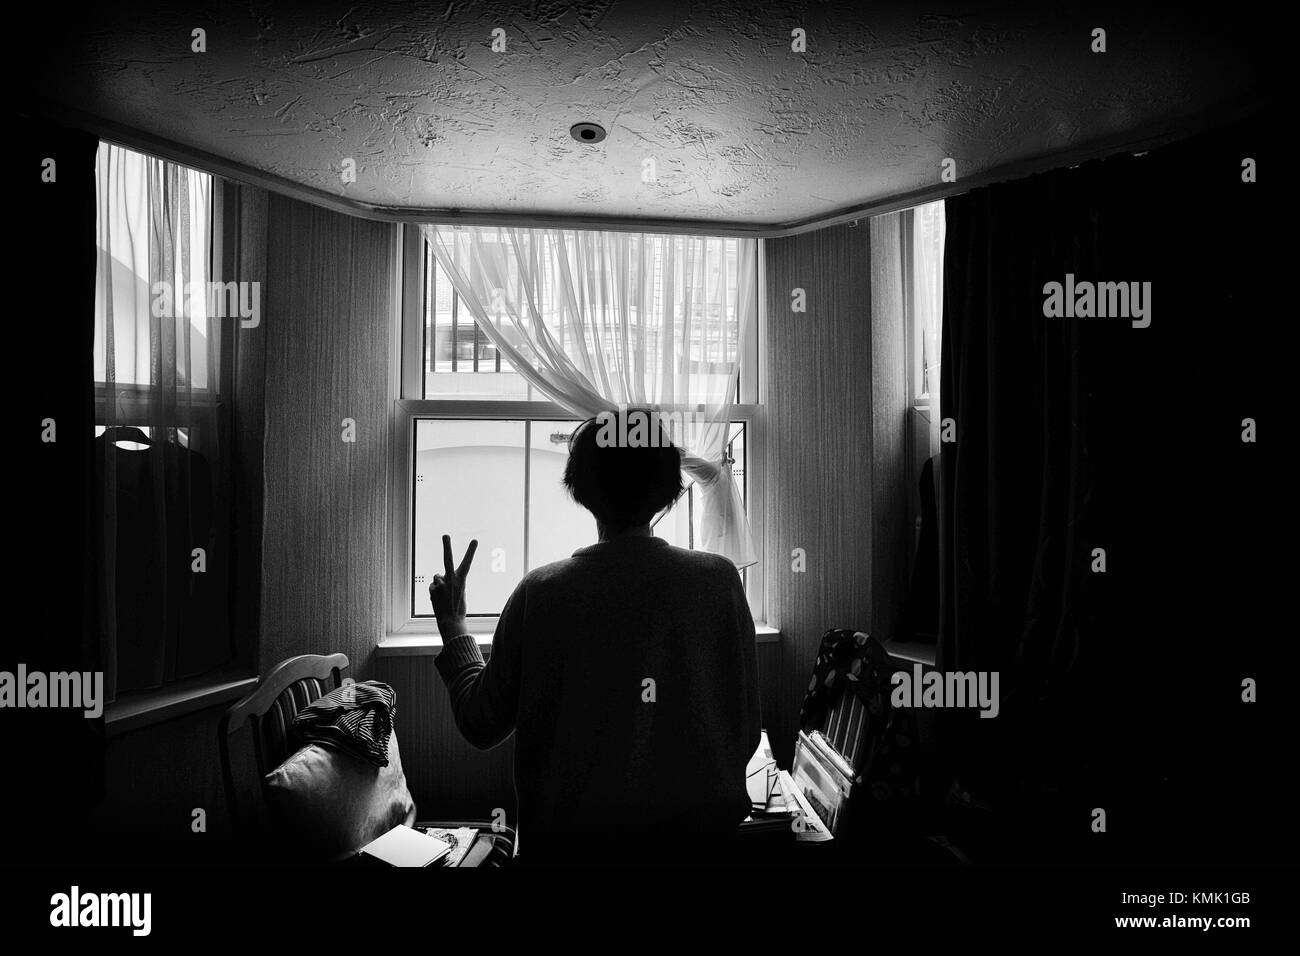 Rear view of woman showing victory sign inside a room, looking through window. London, England - Stock Image